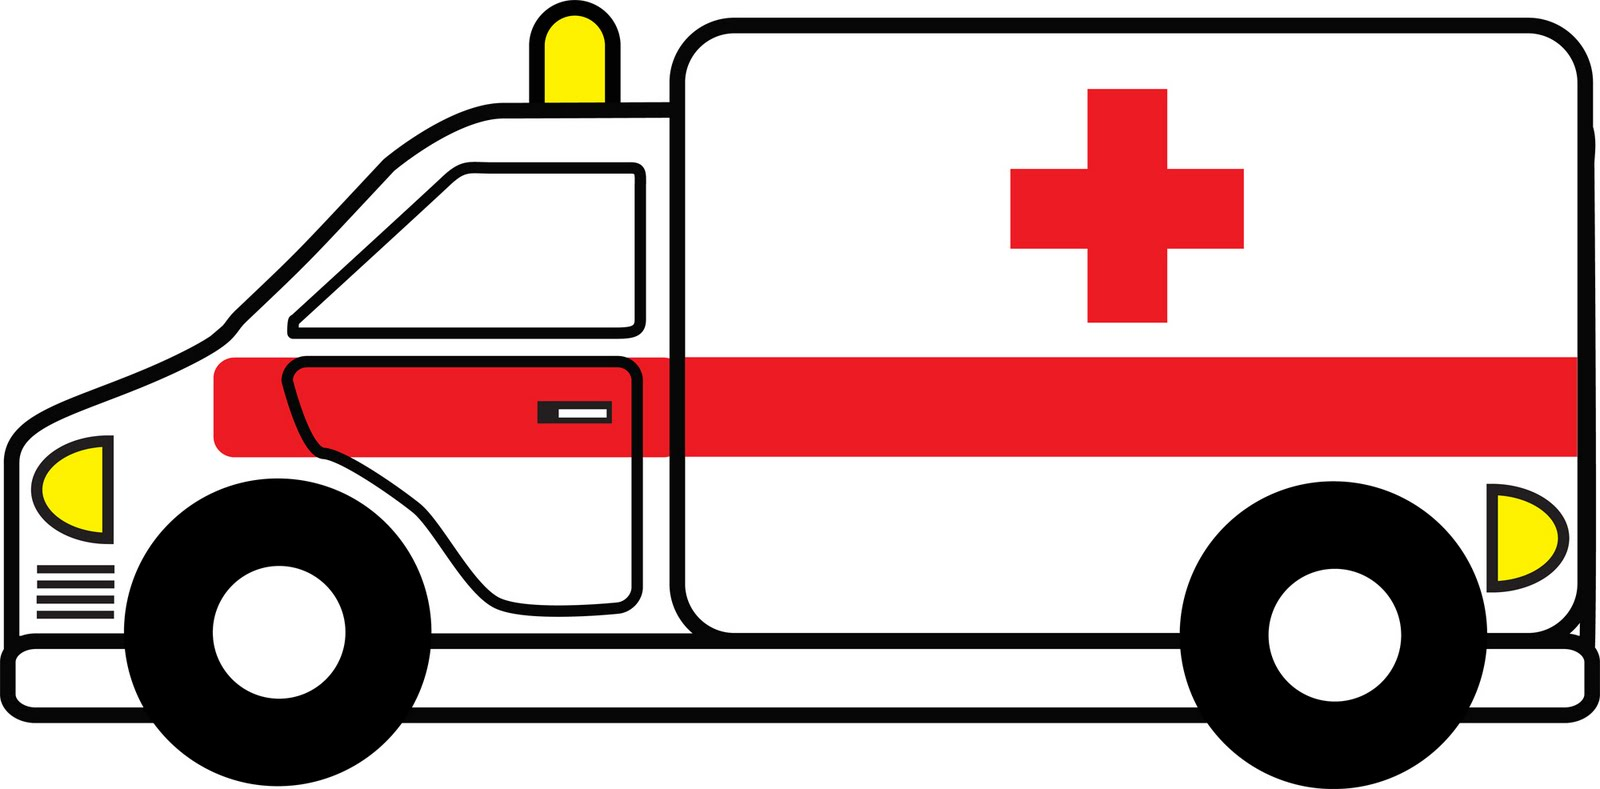 Moving clipart ambulance Images Clipart ambulance%20clipart Free Clipart